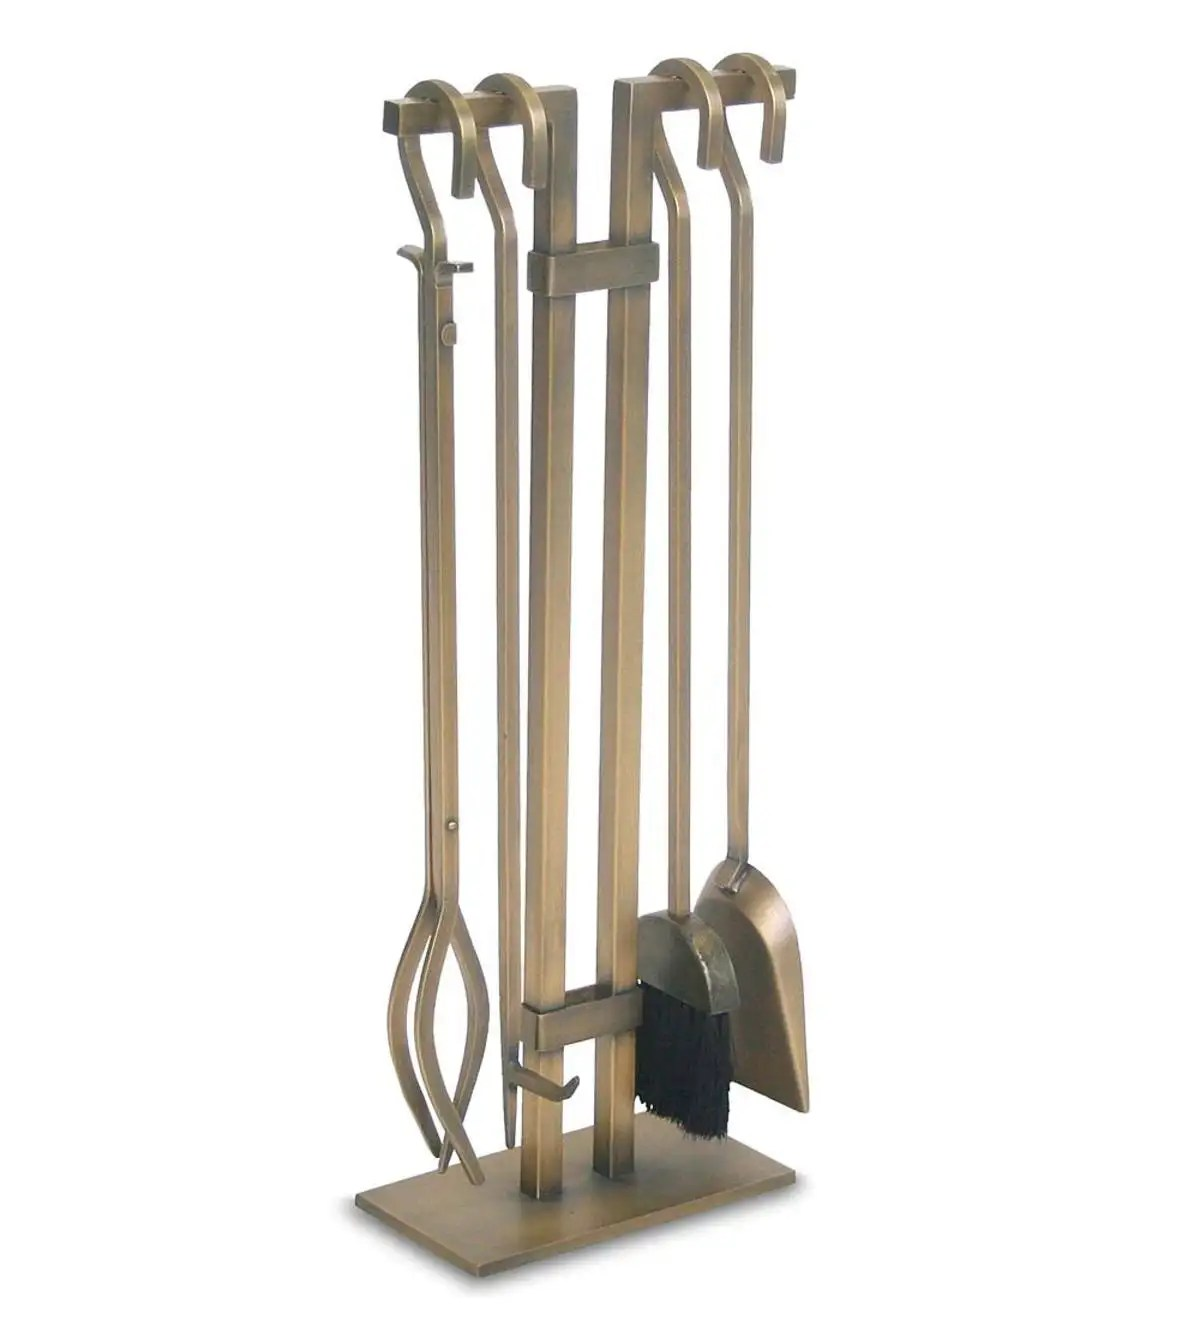 Fireplace Poker Sets Sinclair 4 Pc Brushed Brass Fireplace Tool Set